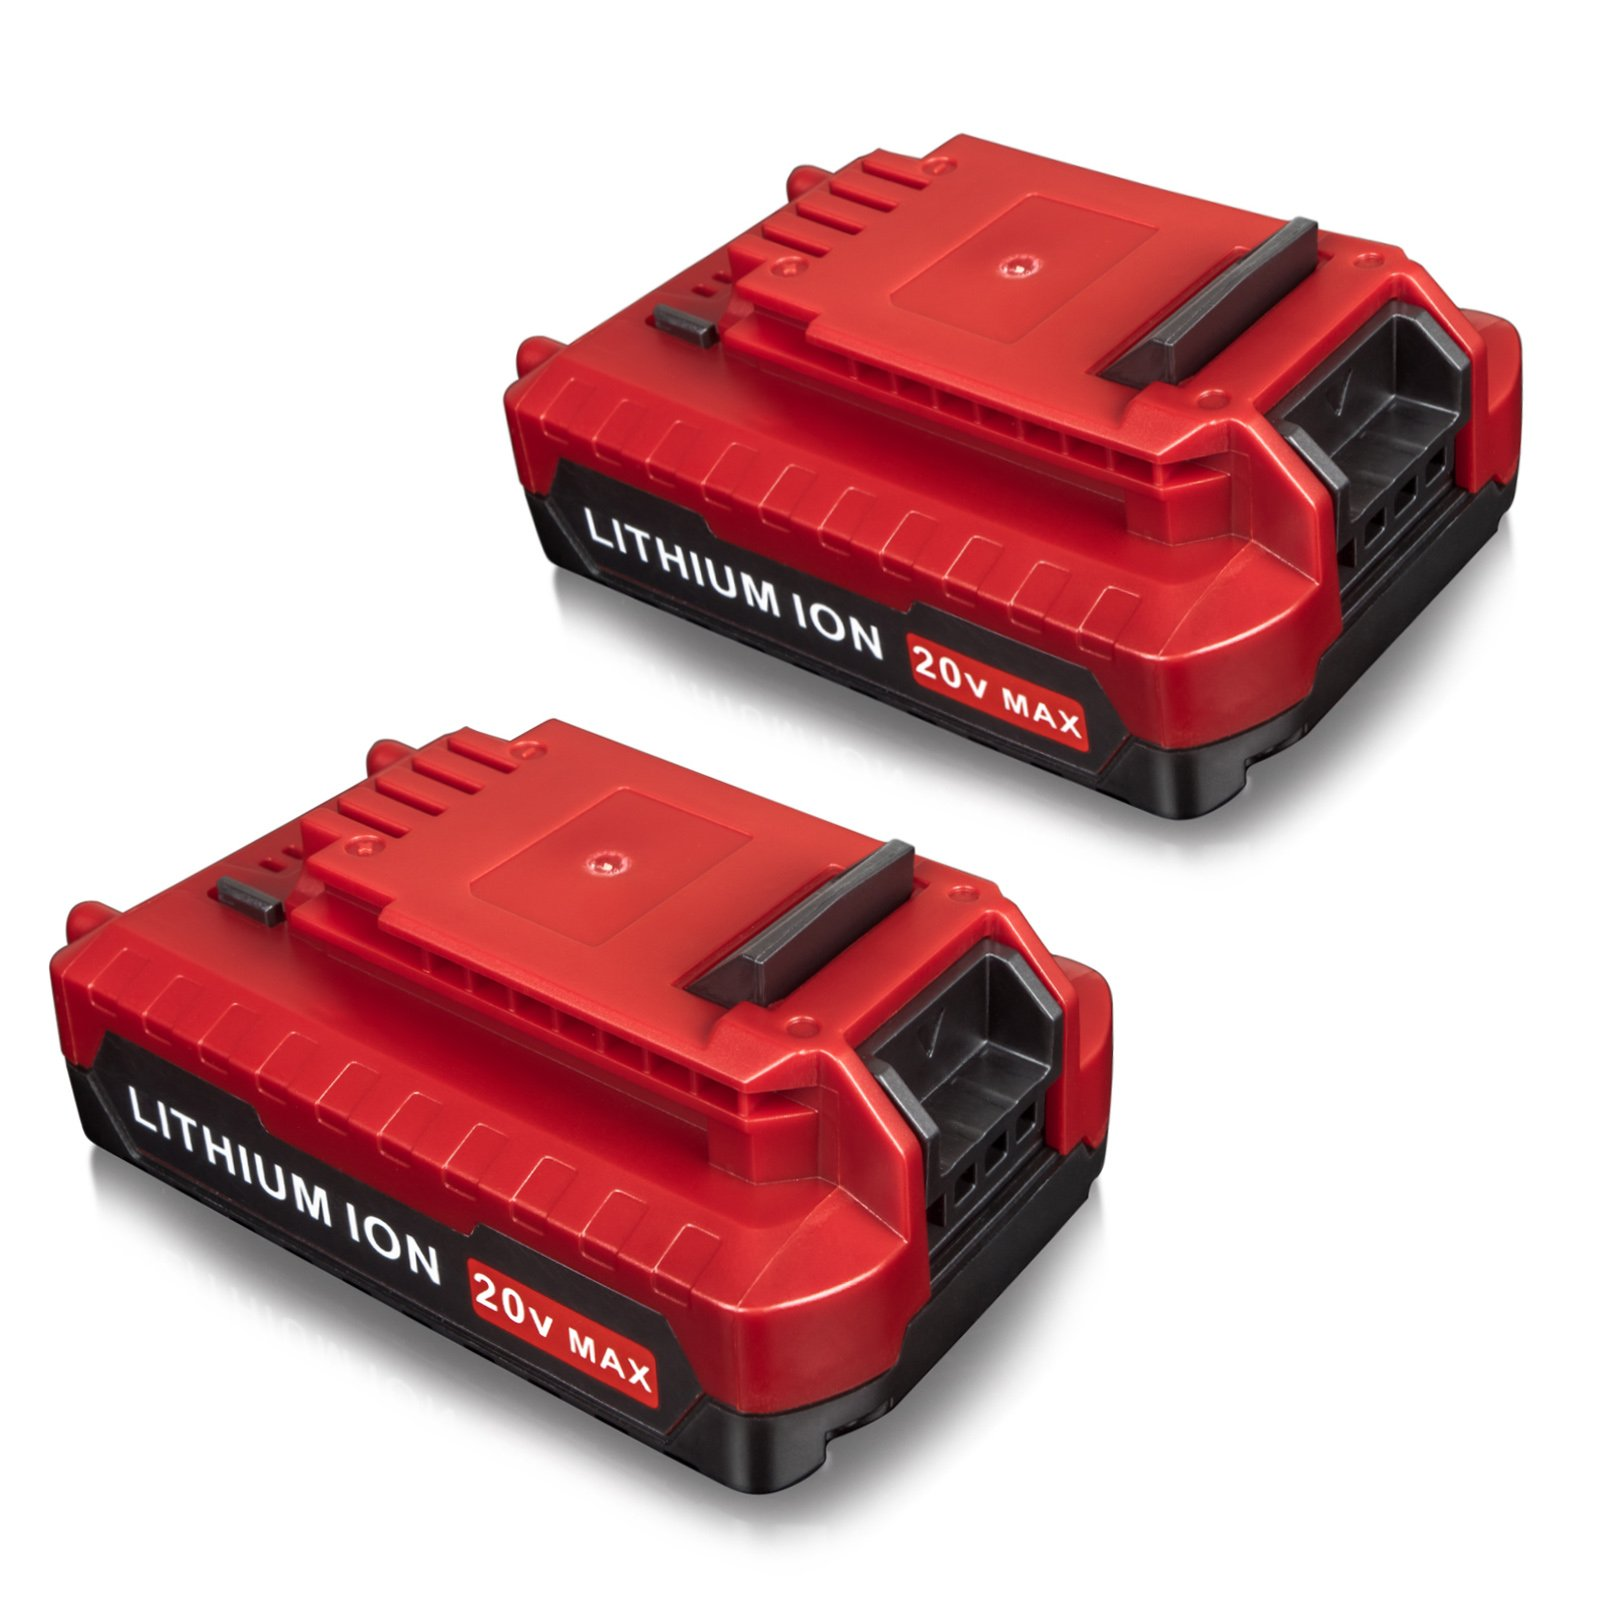 FLAGPOWER 20V MAX 2.0AH Lithium Battery for Porter Cable PCC685L PCC680L Cordless Power Tools (2PACKS)